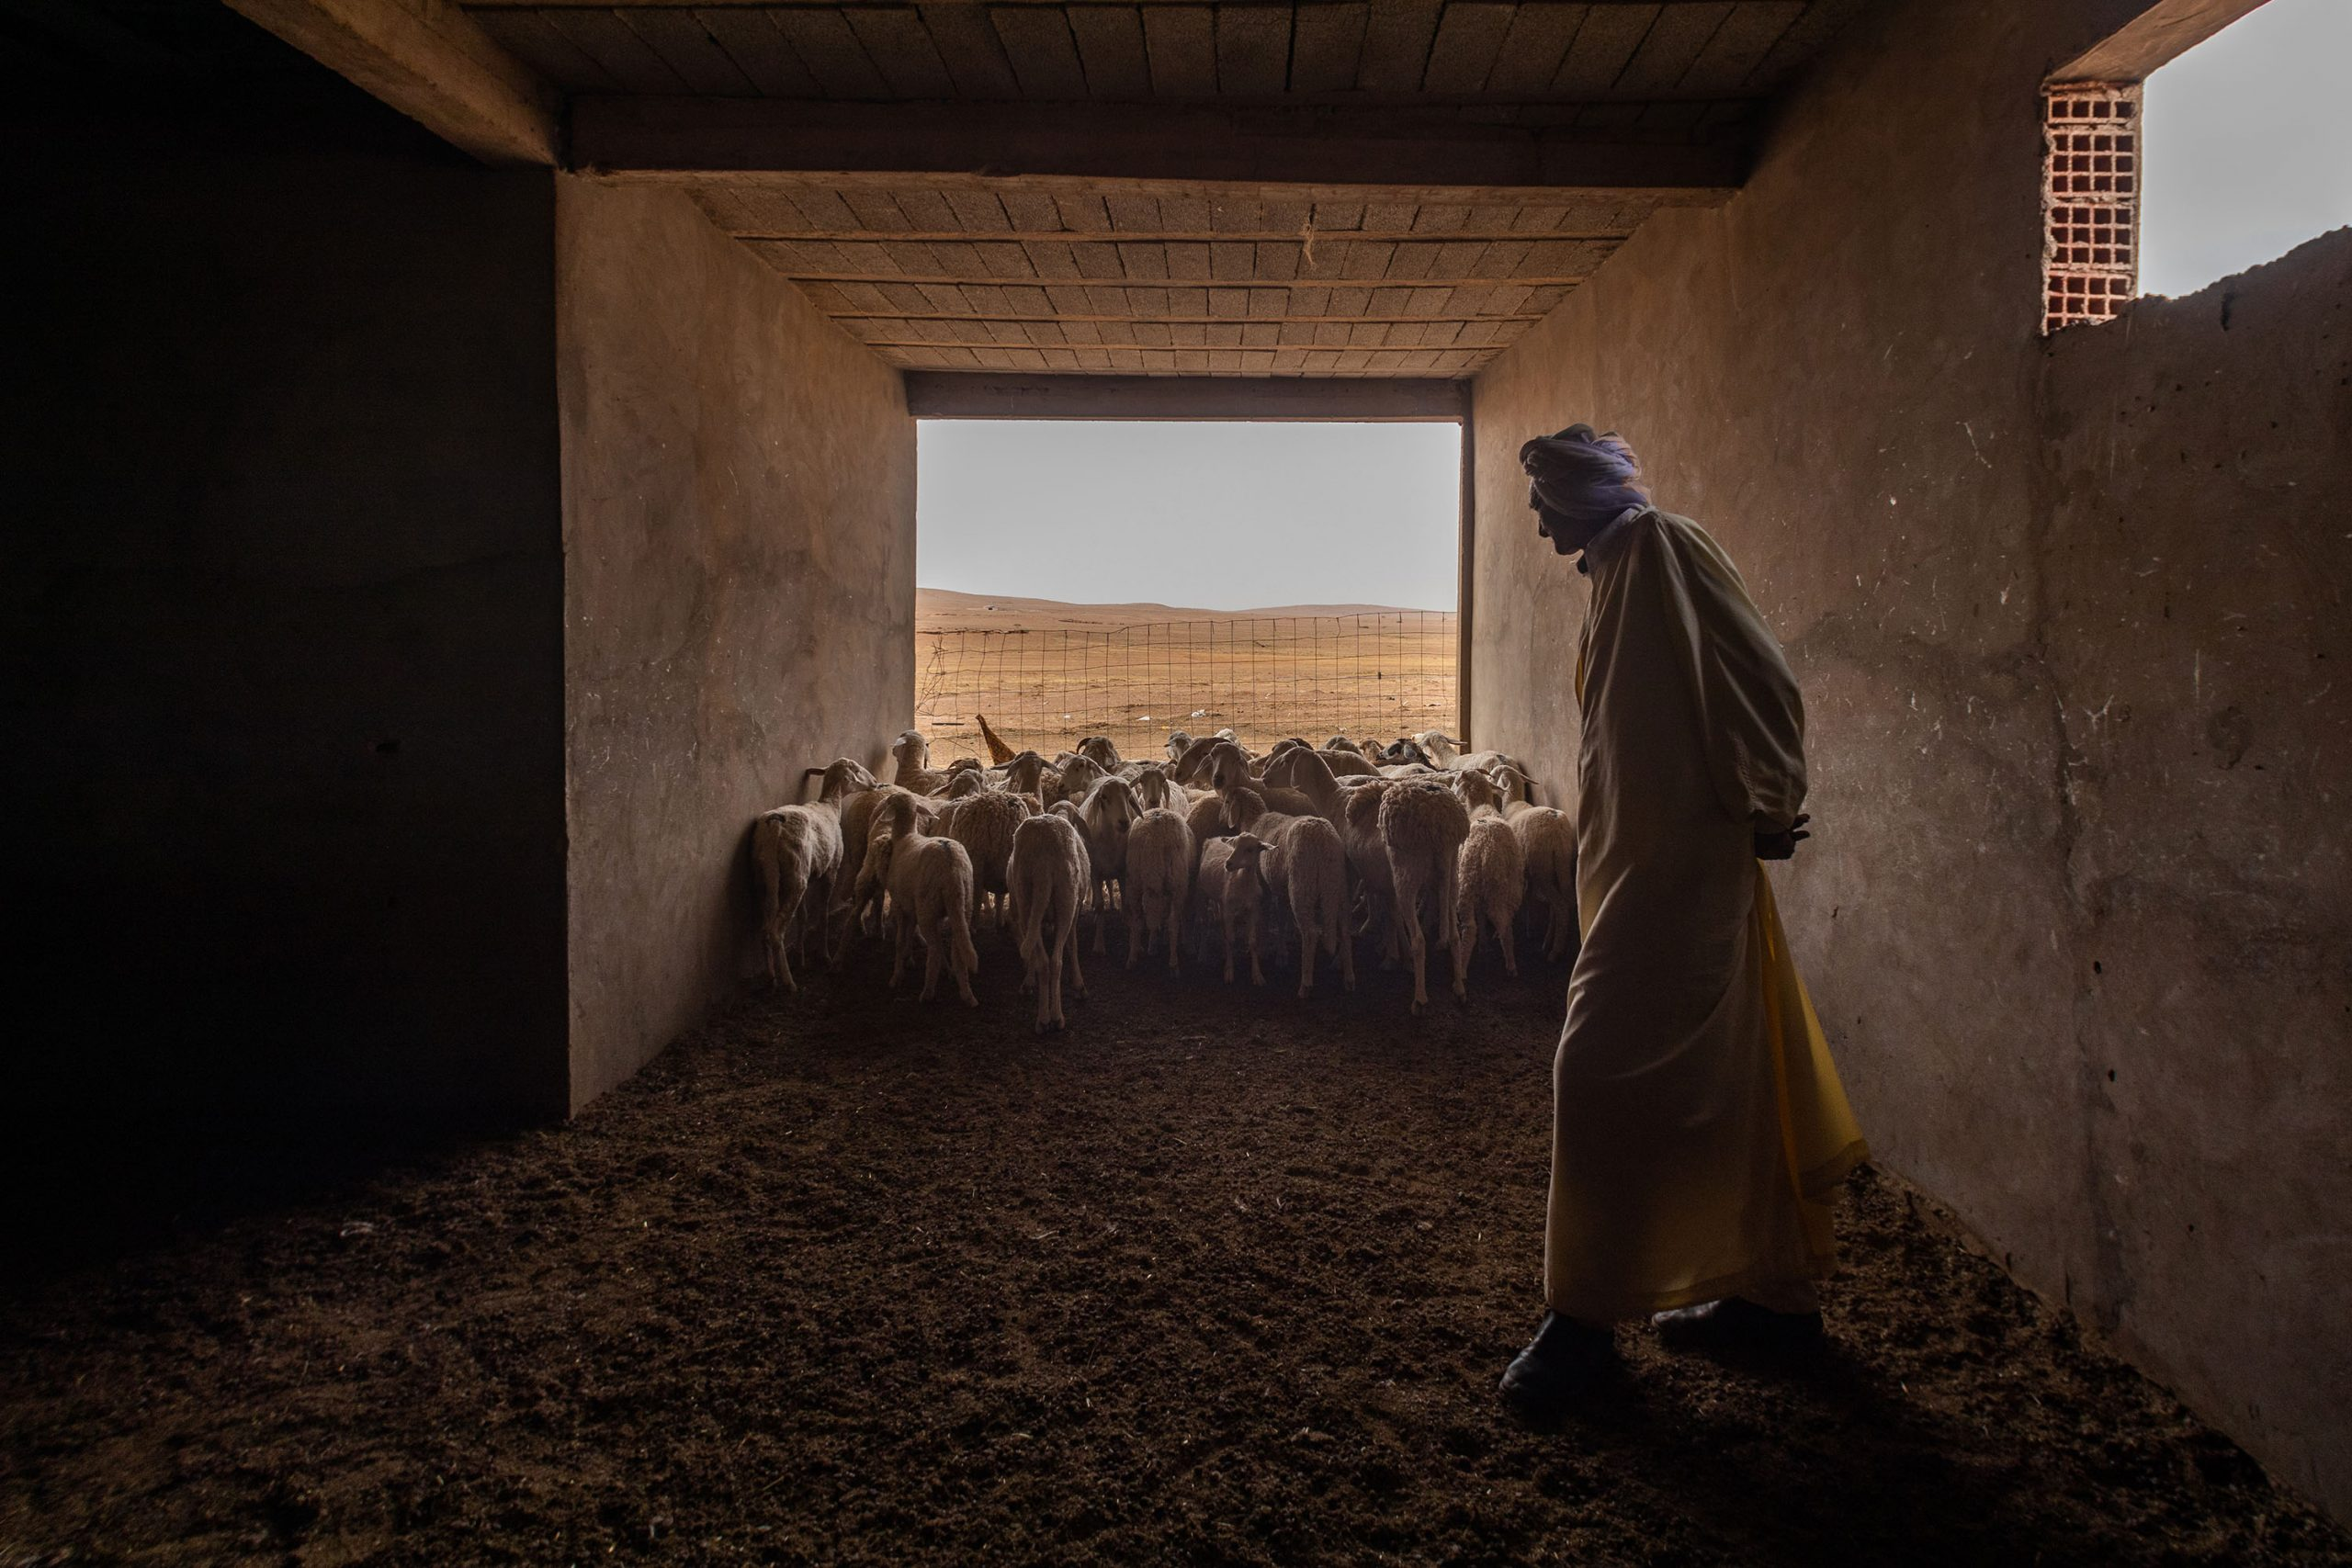 27 June 2020: Mohamed Dahmoune keeps his sheep in two pens a few kilometres from his home. (Photograph by Abderazak HadjTahar)